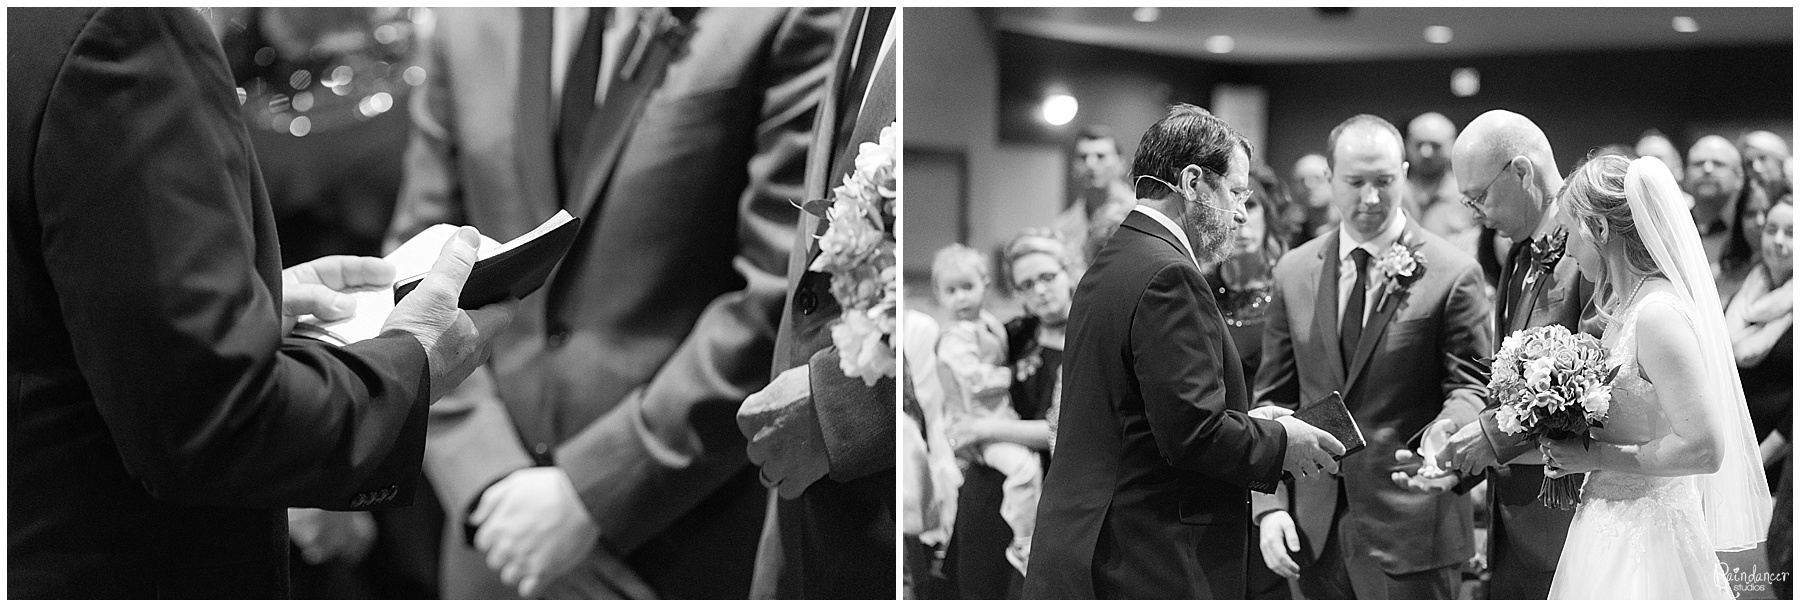 Father giving is daughter away by Raindancer Studios Indianapolis Wedding photographer Jill Howell